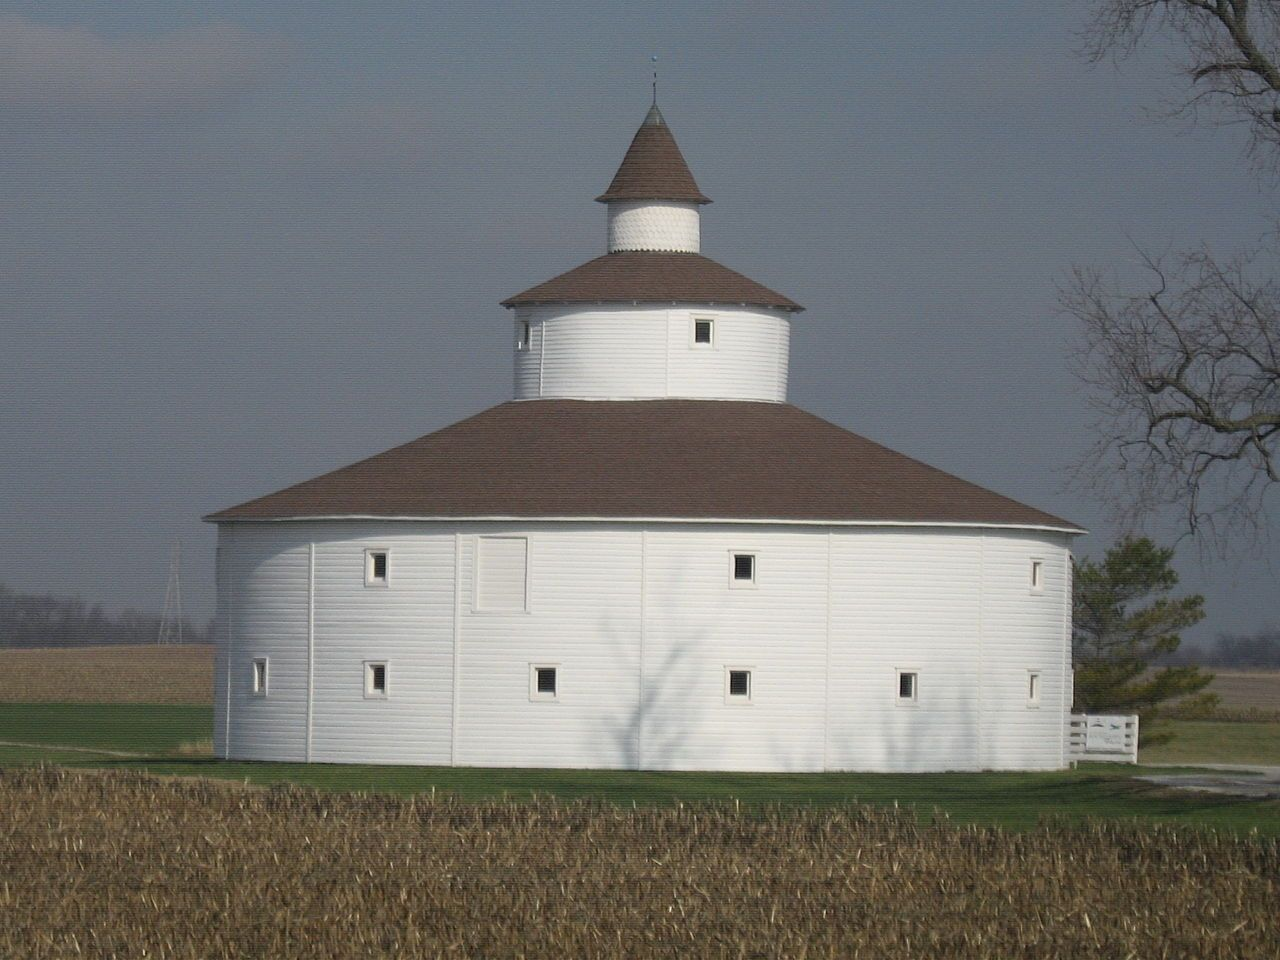 Strauther Pleak Round Barn in Decatur County, Indiana